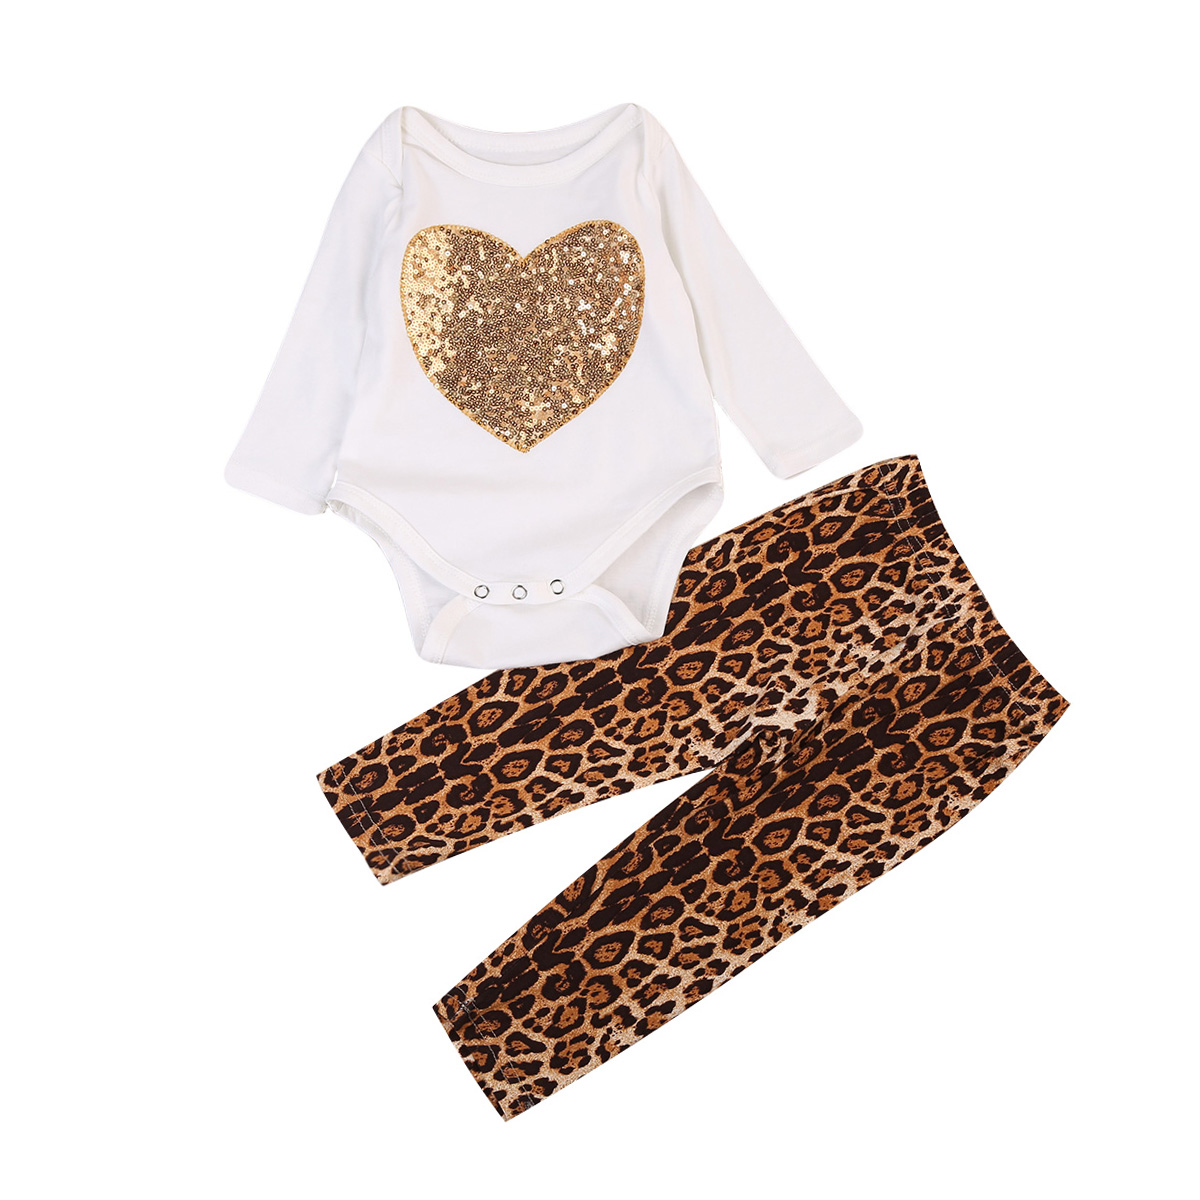 2Pcs Toddler Newborn Baby Girls Clothes Long Sleeve Romper+Leopard Pants Outfits Cotton Cute Baby Sets